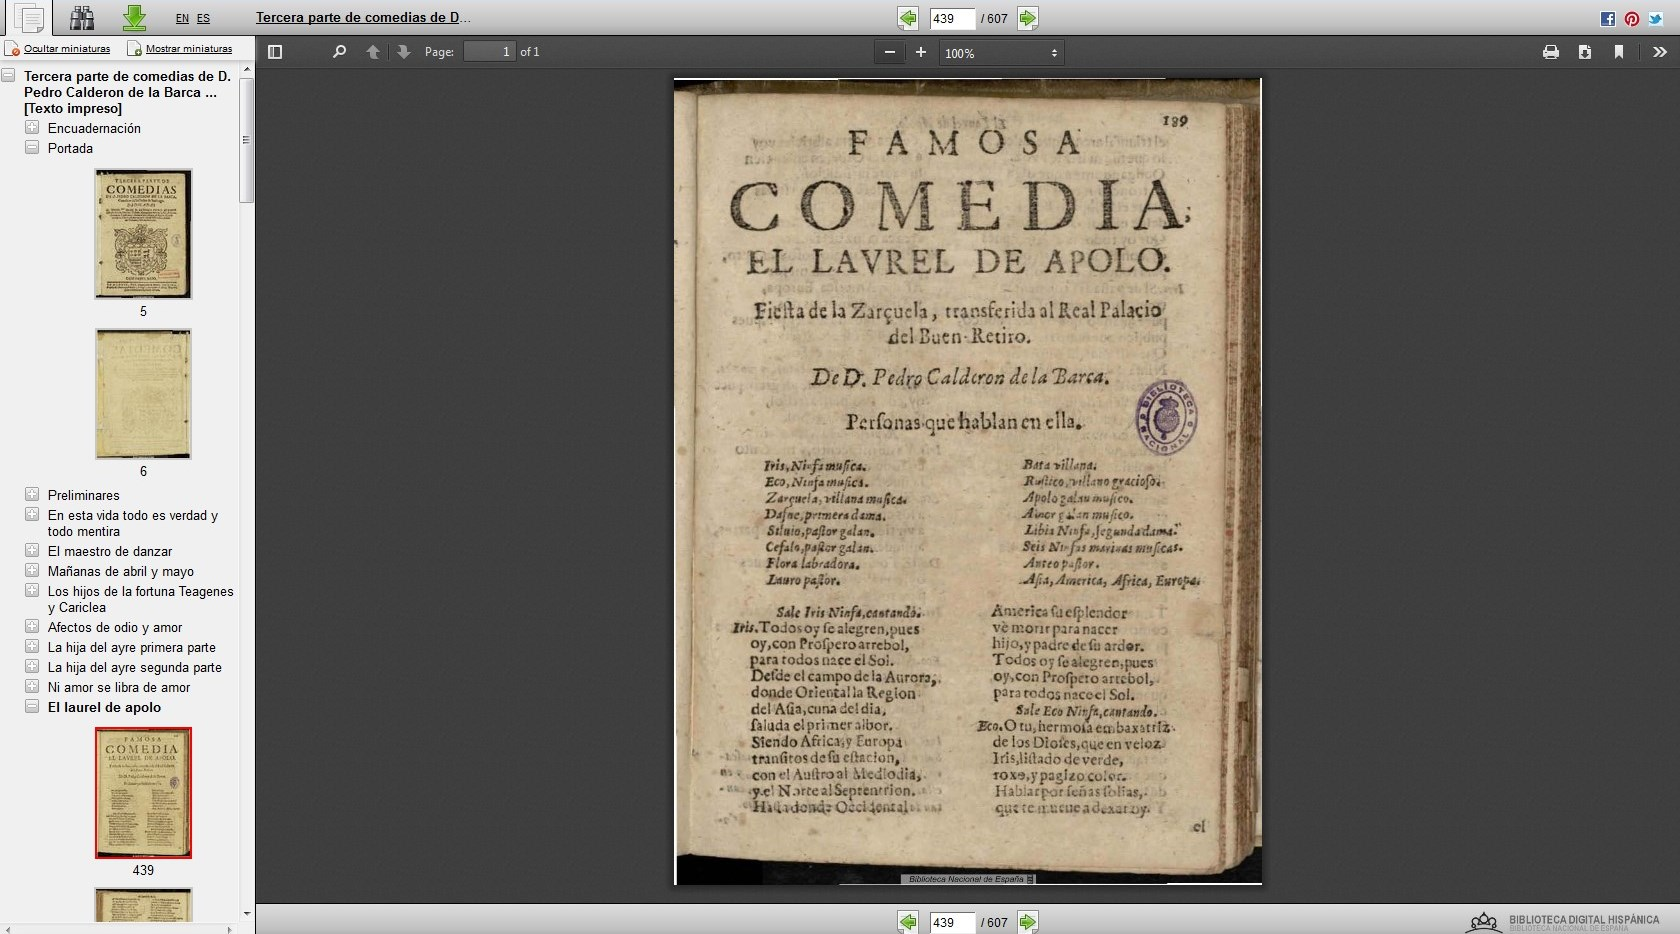 View of digital edition of the Third Part of the Plays by Pedro Calderon de la Barca, 1664